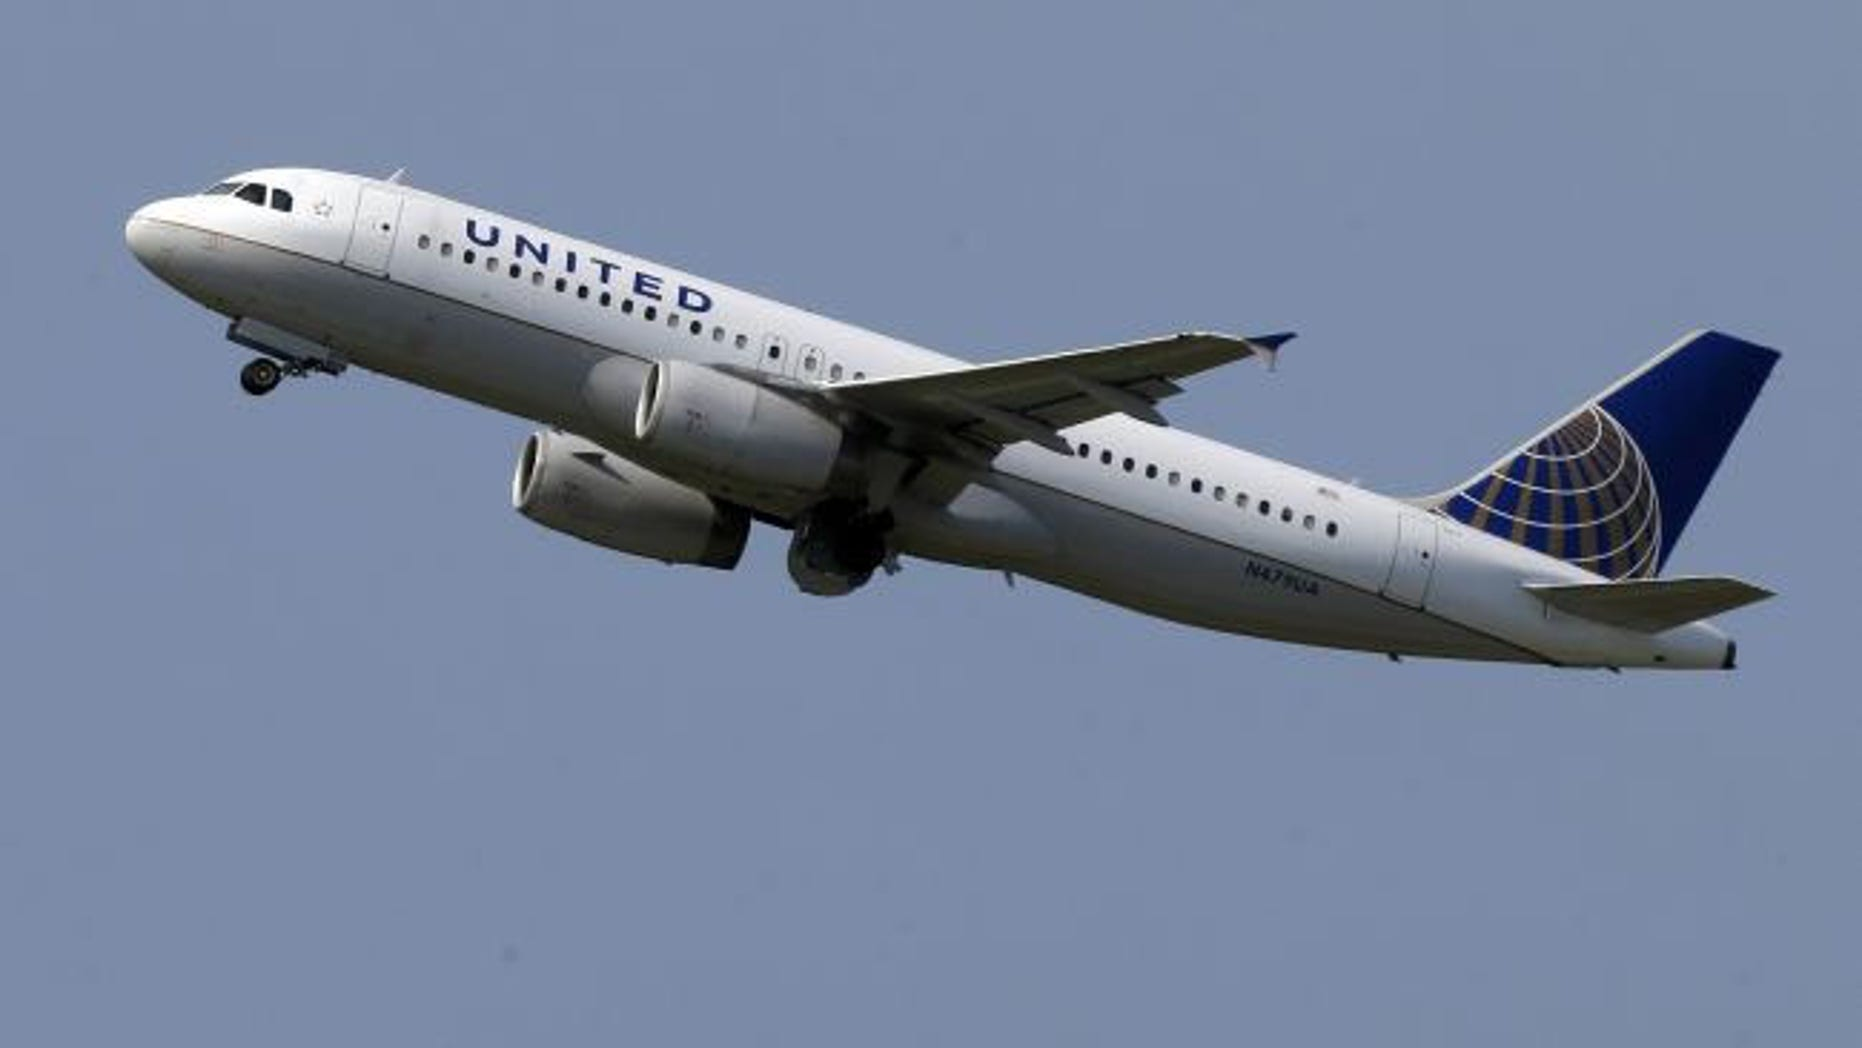 A mother of a special needs child says that United humiliated her and her family during a recent flight.